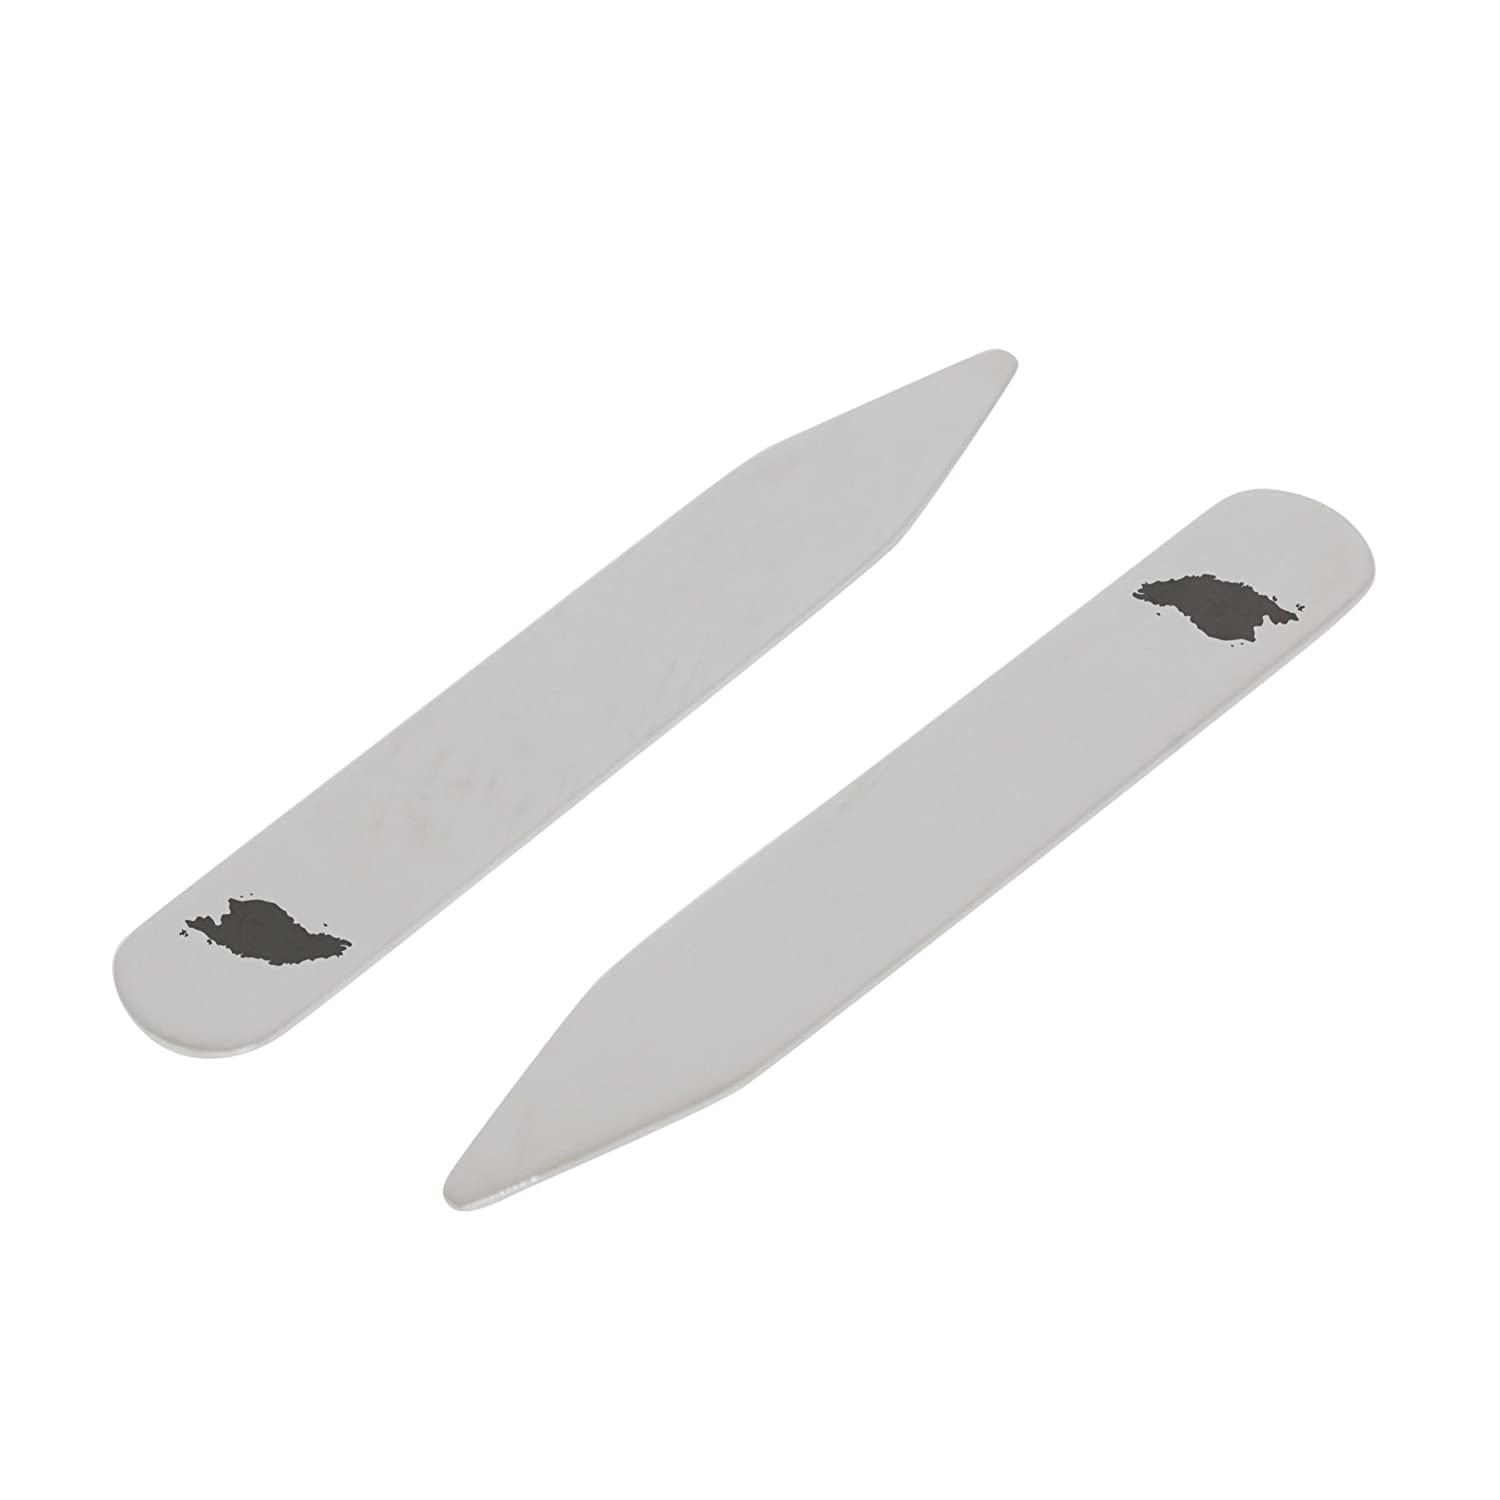 Made In USA 2.5 Inch Metal Collar Stiffeners MODERN GOODS SHOP Stainless Steel Collar Stays With Laser Engraved Malaysia Design